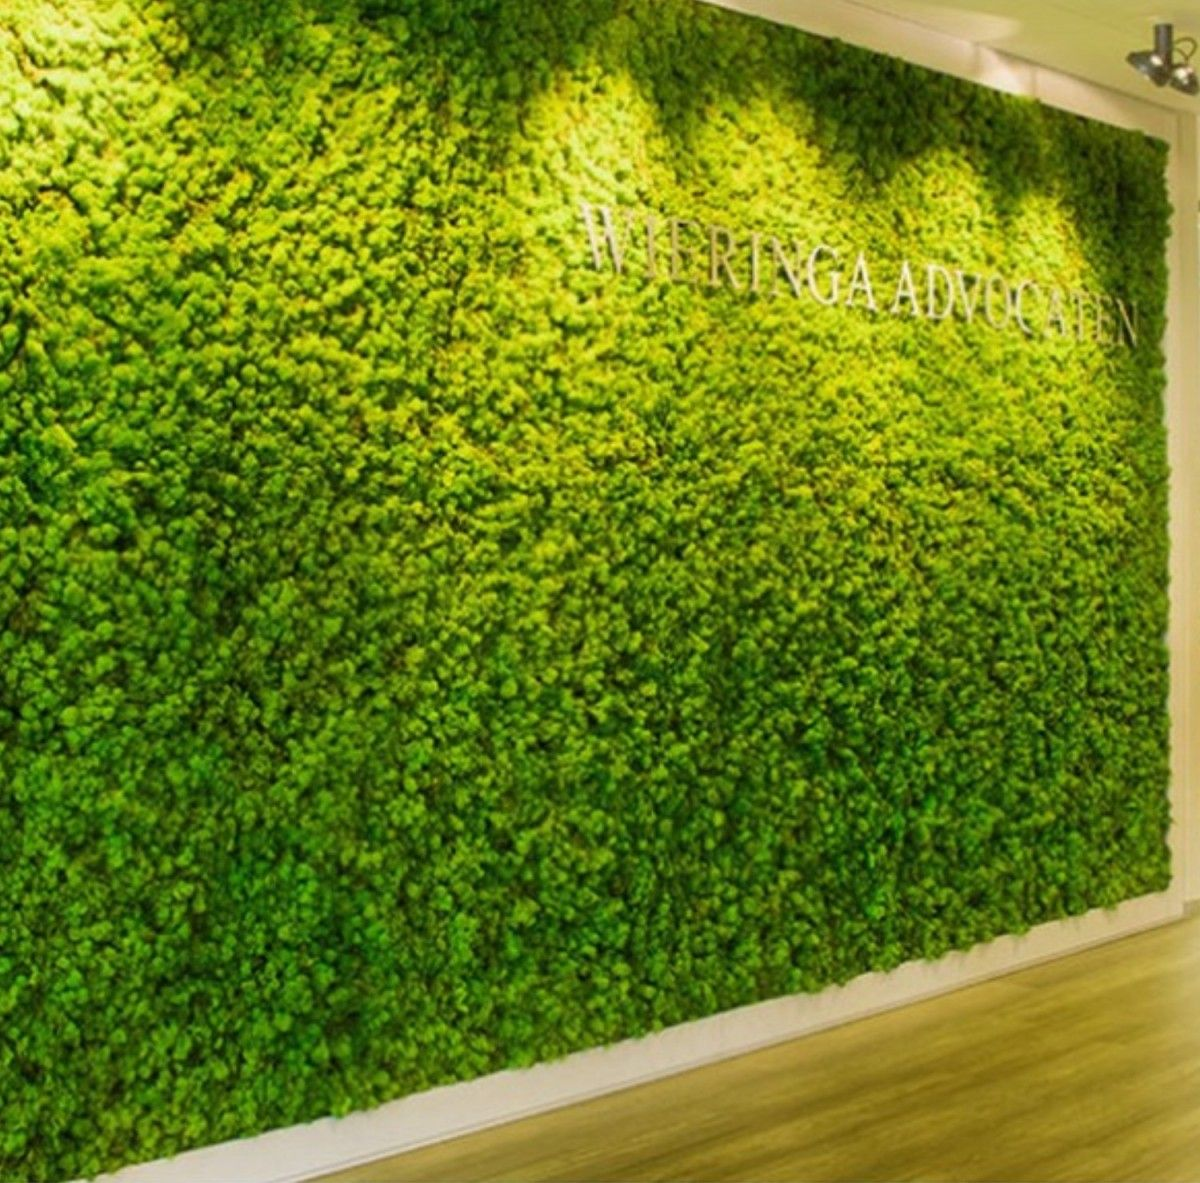 reindeermosswalls 1 moss wall pinterest. Black Bedroom Furniture Sets. Home Design Ideas